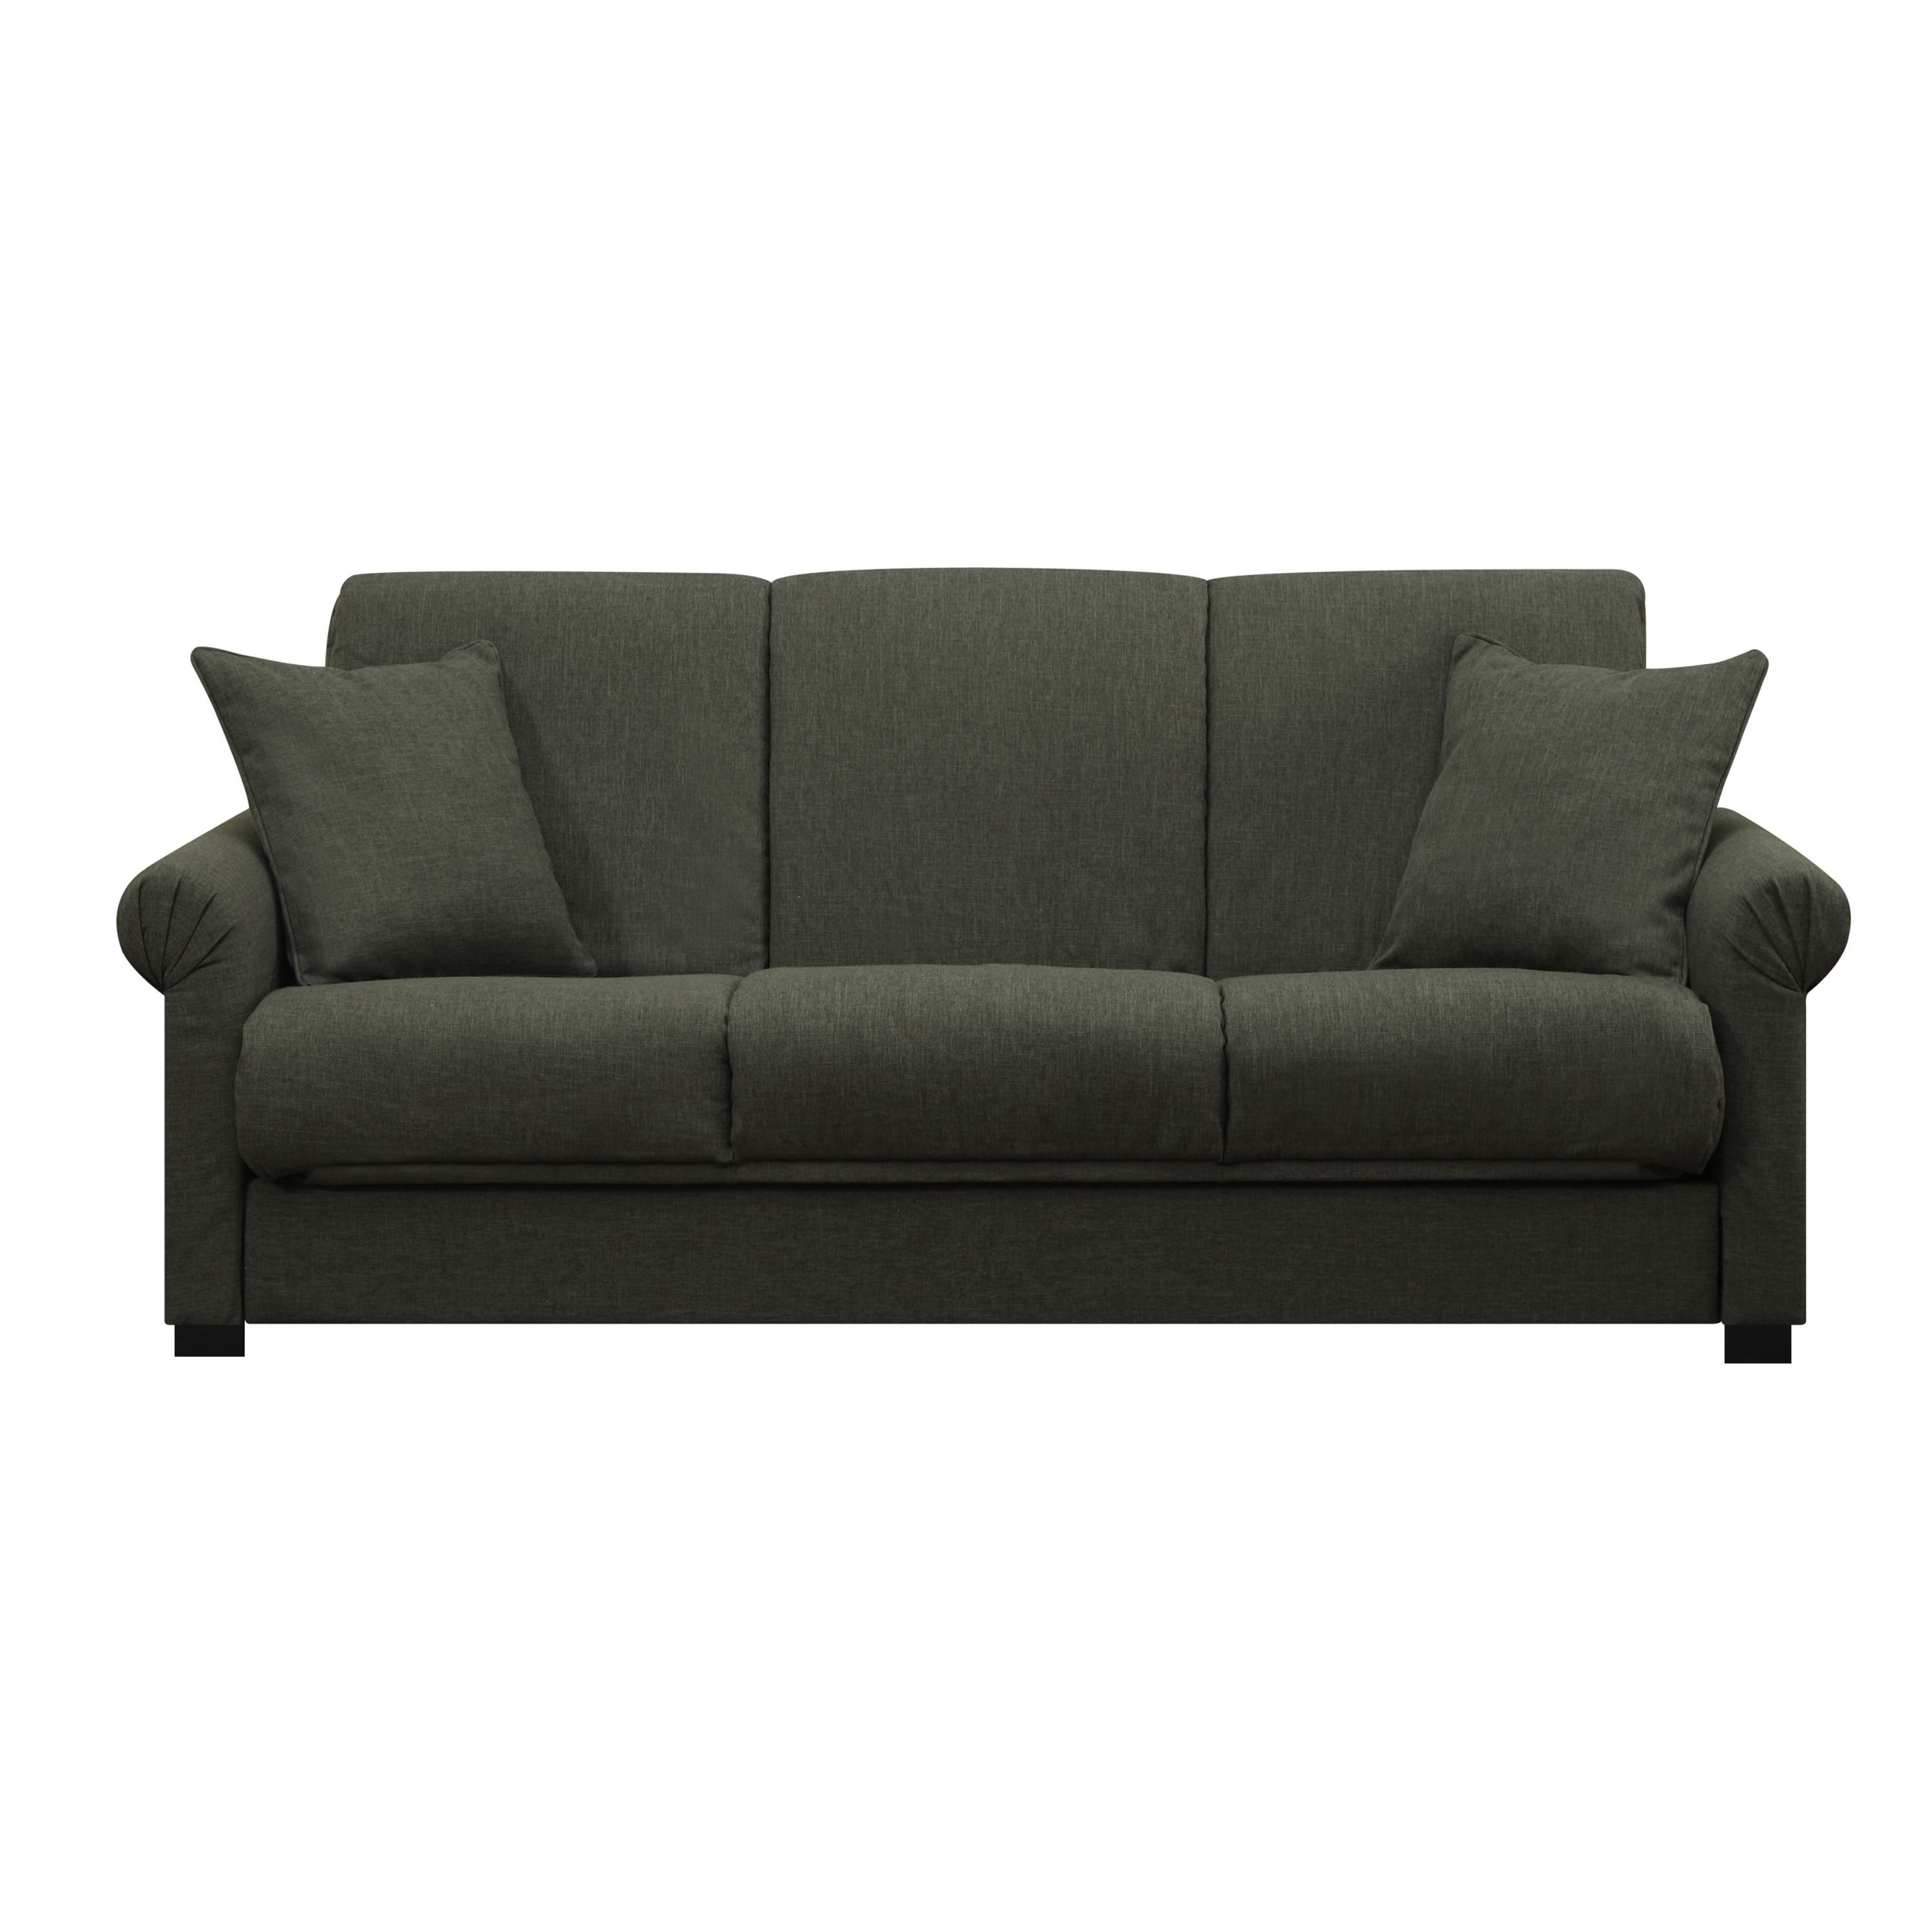 Make A Place For Company To Sleep Without Having To Add An Extra Bedroom When You Place This Gray Futon Sofa Sleeper In The Livin Handy Living Futon Sofa Futon